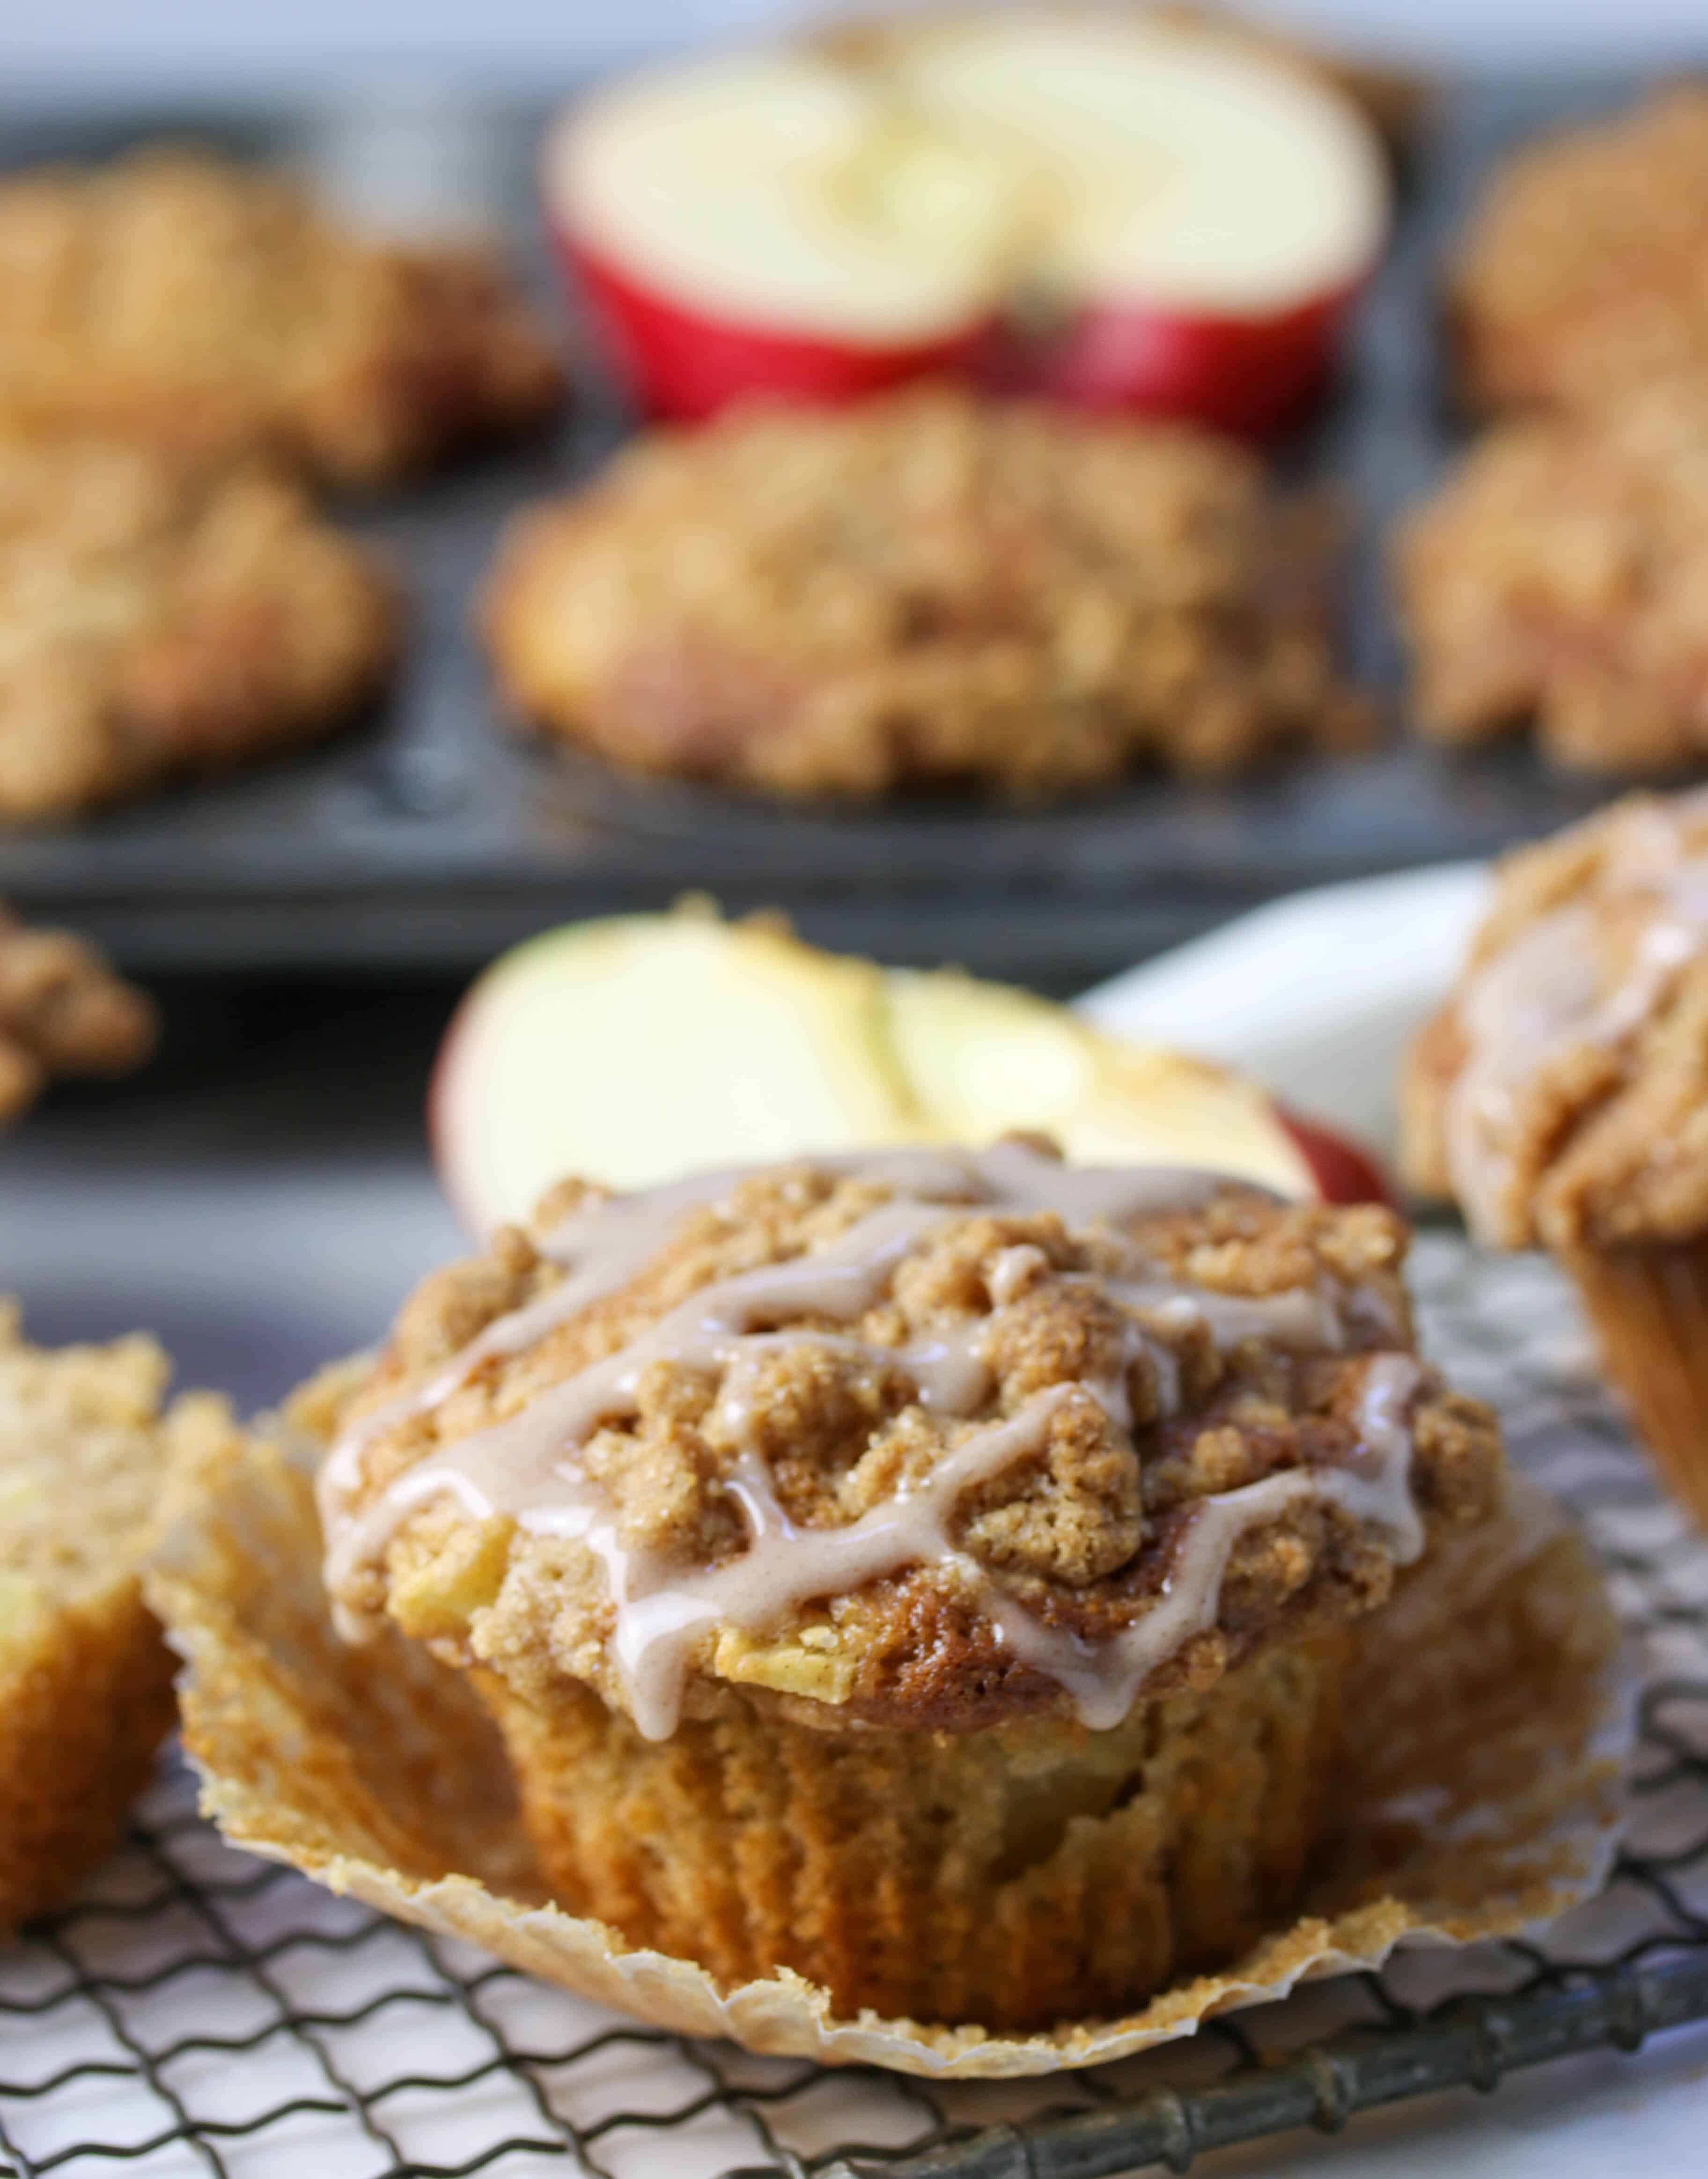 apple crumb muffin with glaze and muffin liner peeled away from it